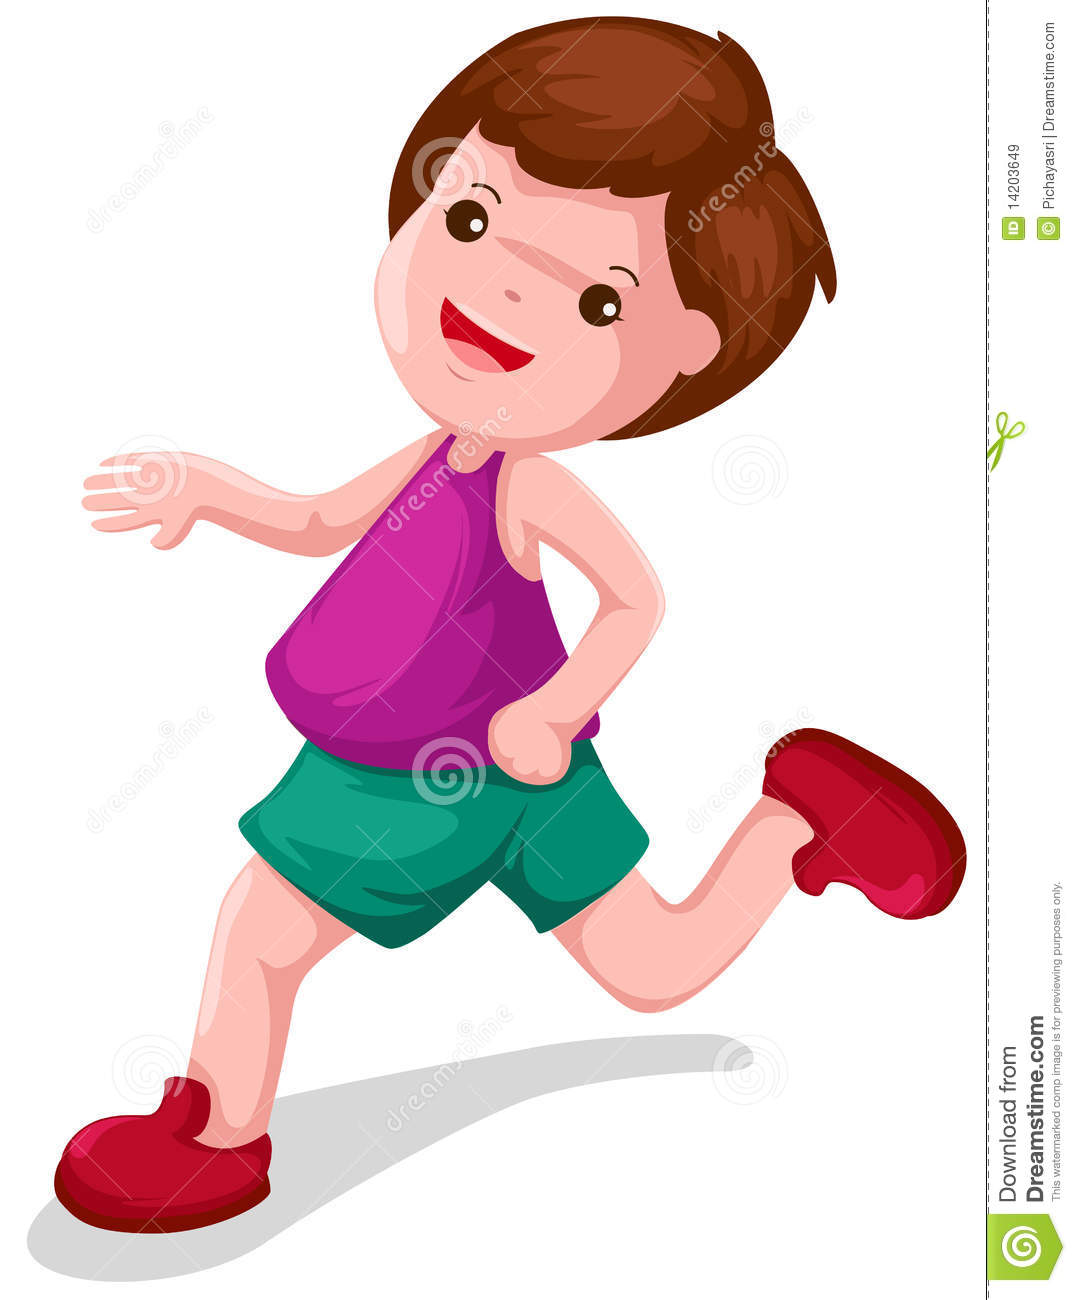 Boy Running Fast Clipart Boy Running Royalty Free Stock